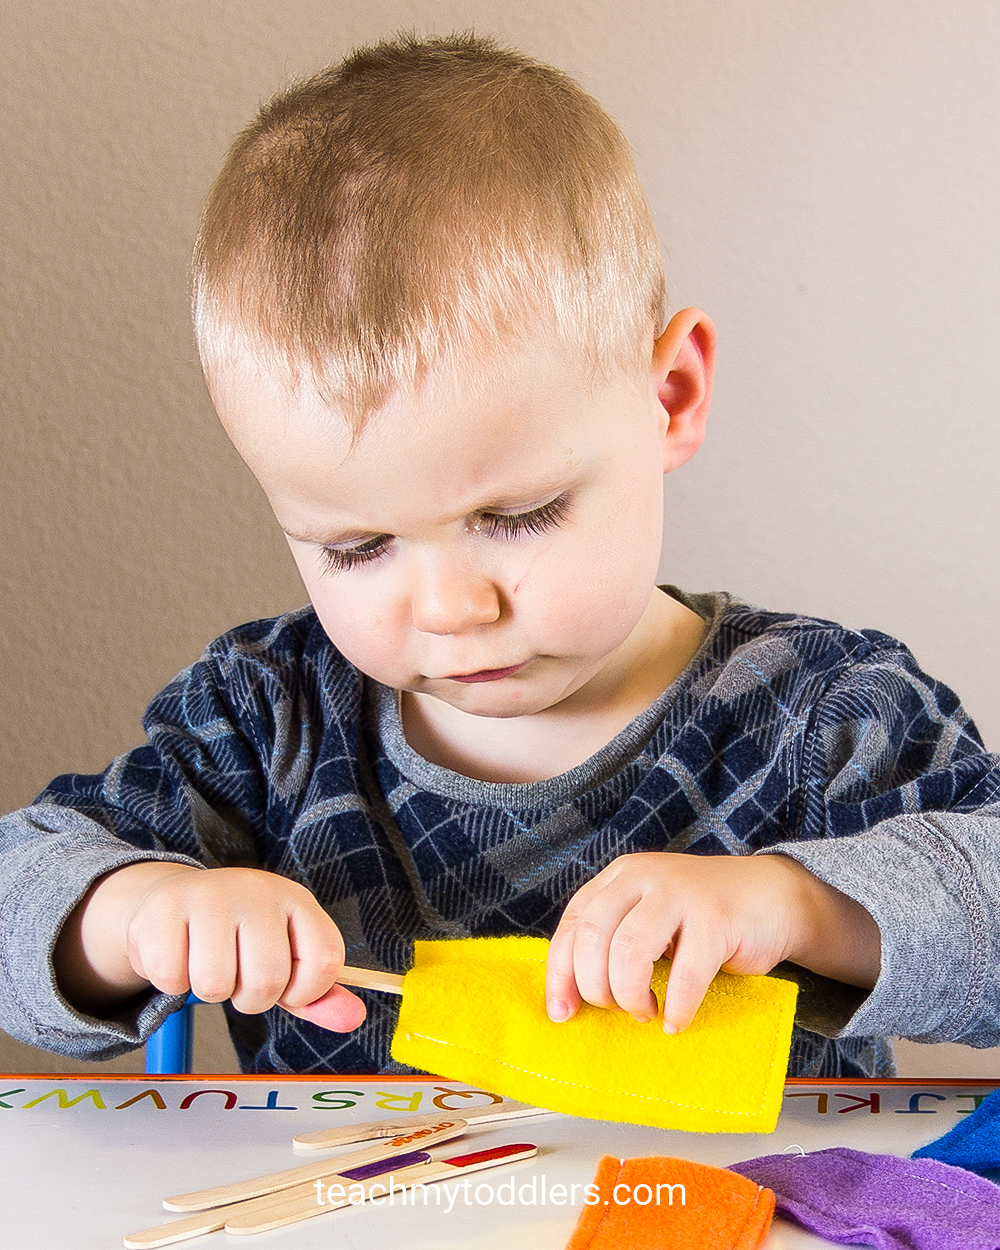 This popsicle stick game is a great idea to teach toddlers colors